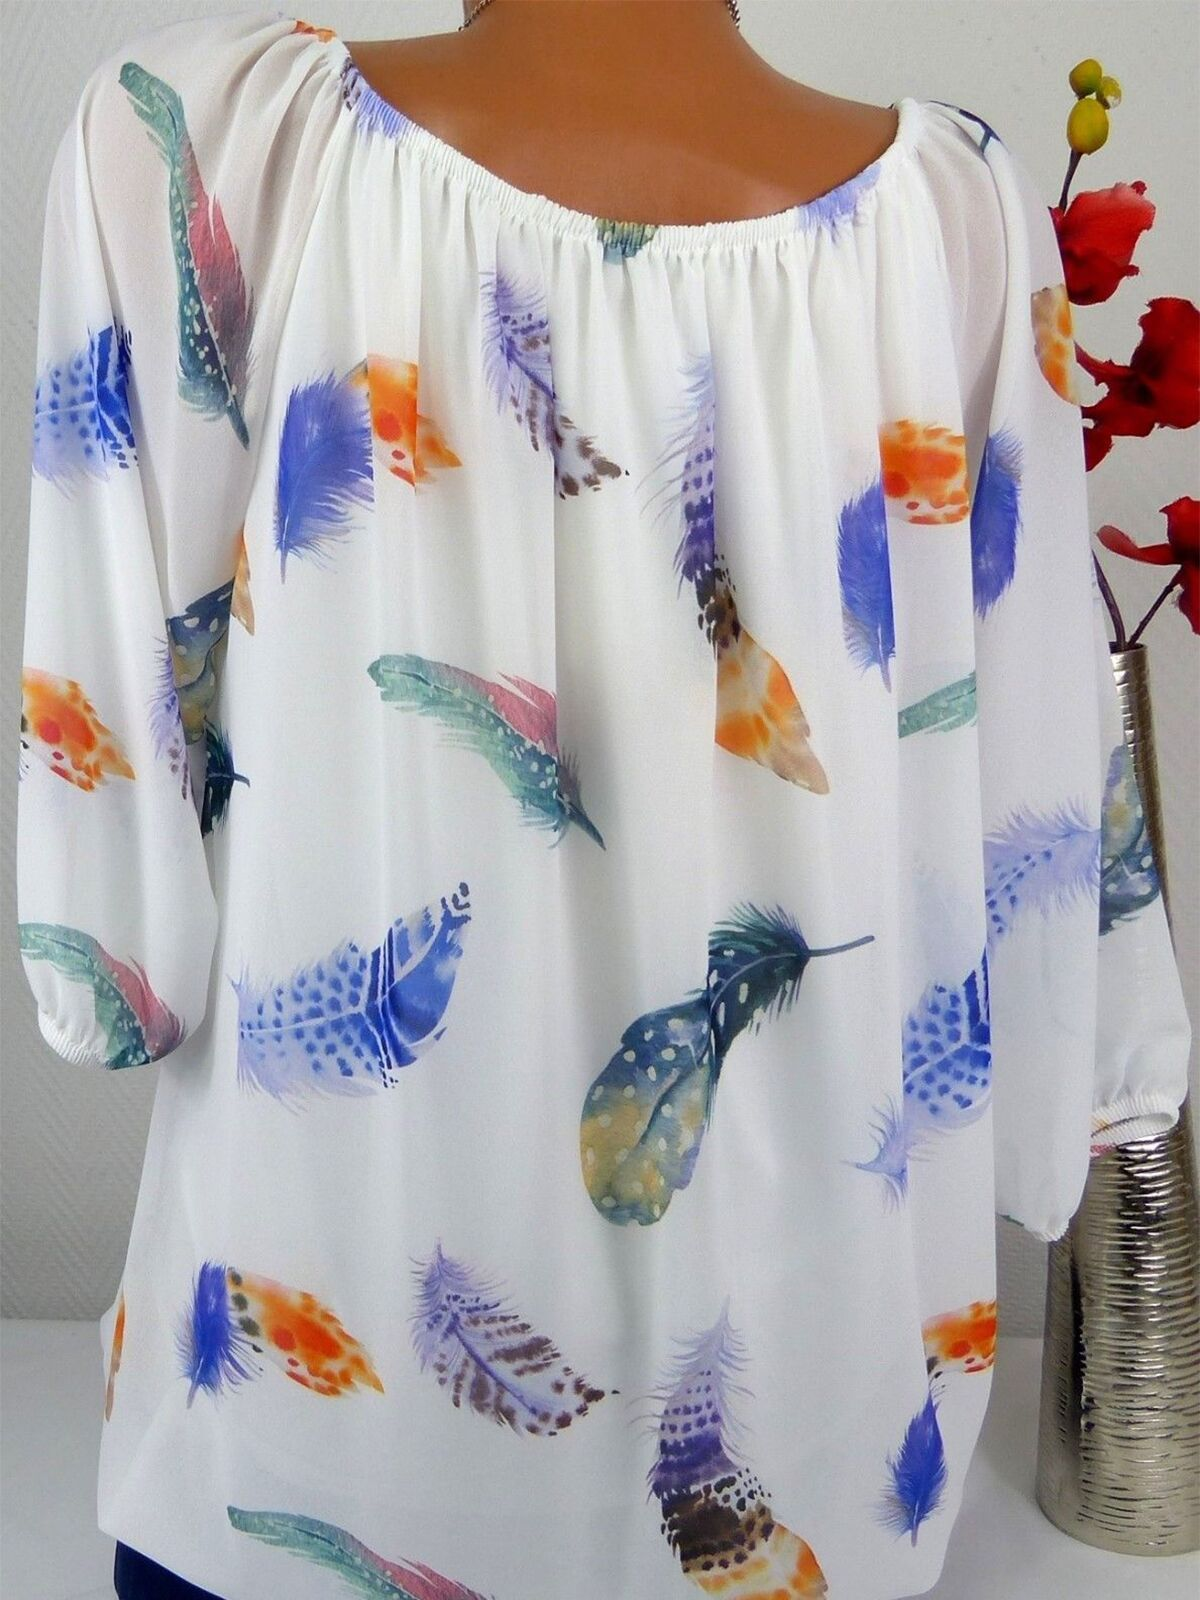 3c1d2ecc12 Polyester Word Collar Feather Printed Long Sleeve Long Sleeve T-Shirts #Ad  , #ad, #Collar, #Feather, #Polyester, #Word